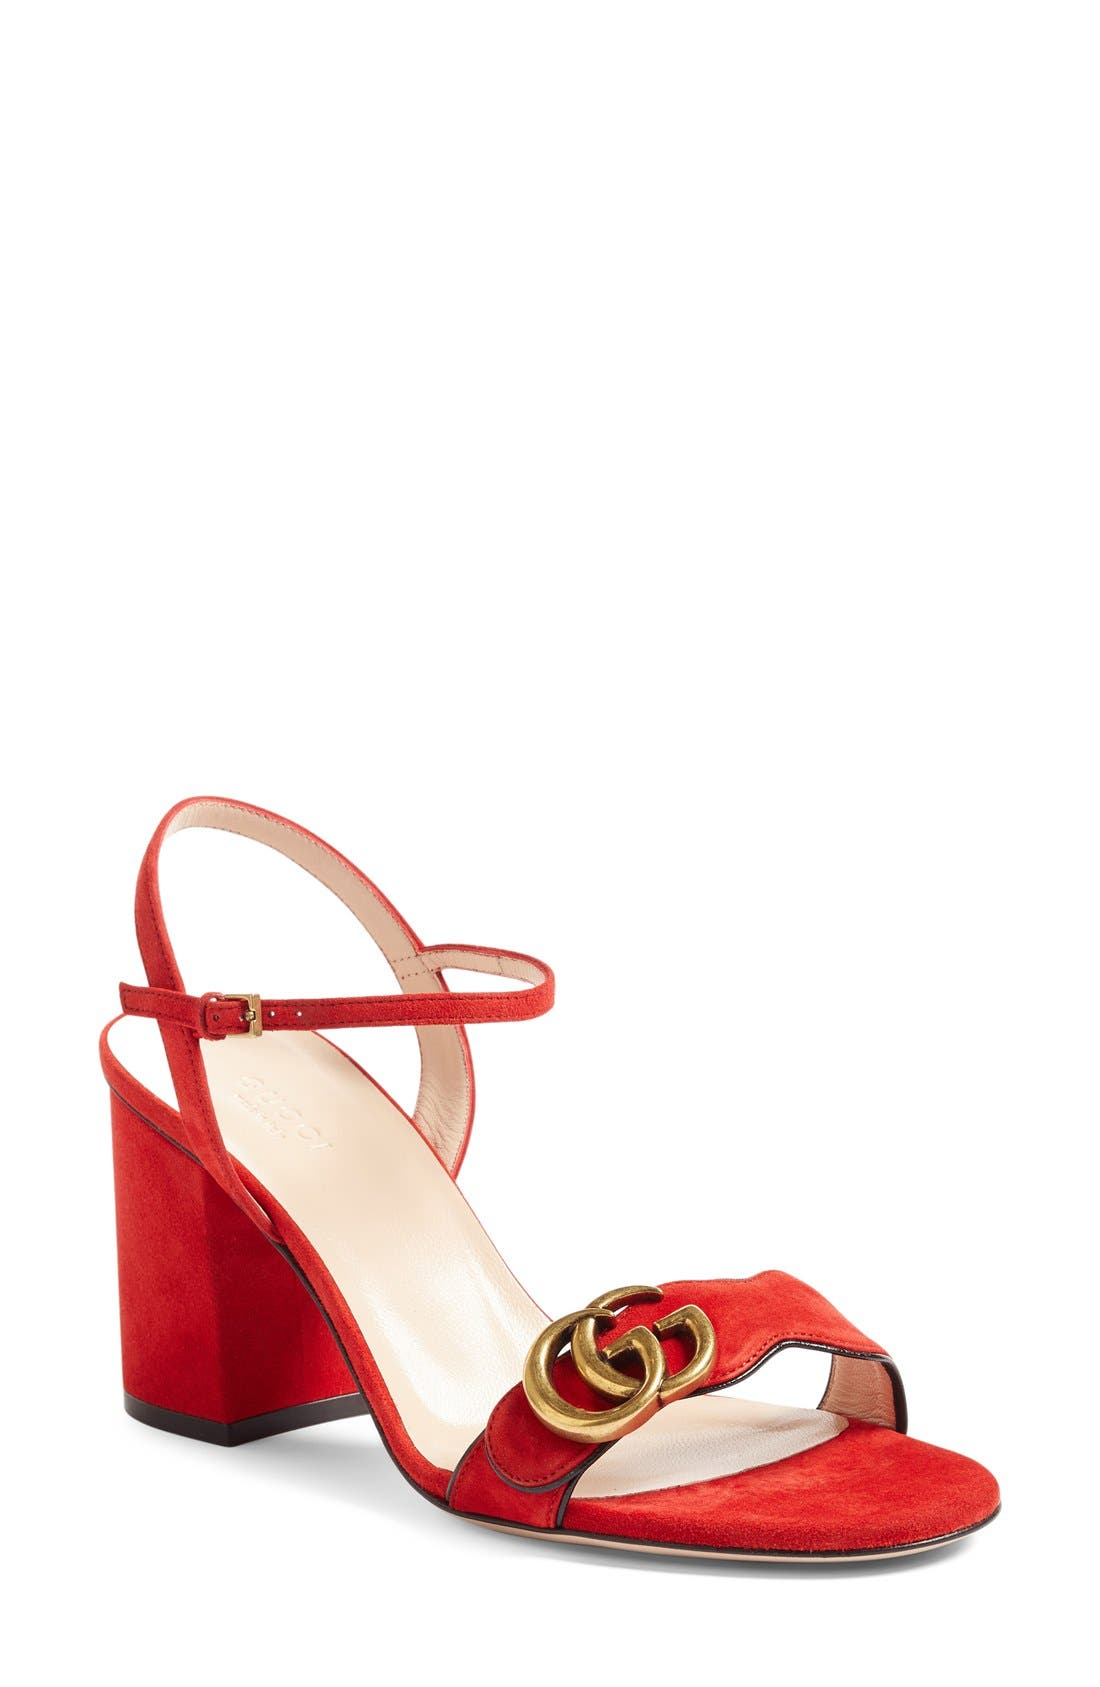 GG Marmont Sandal,                             Main thumbnail 1, color,                             Red Suede